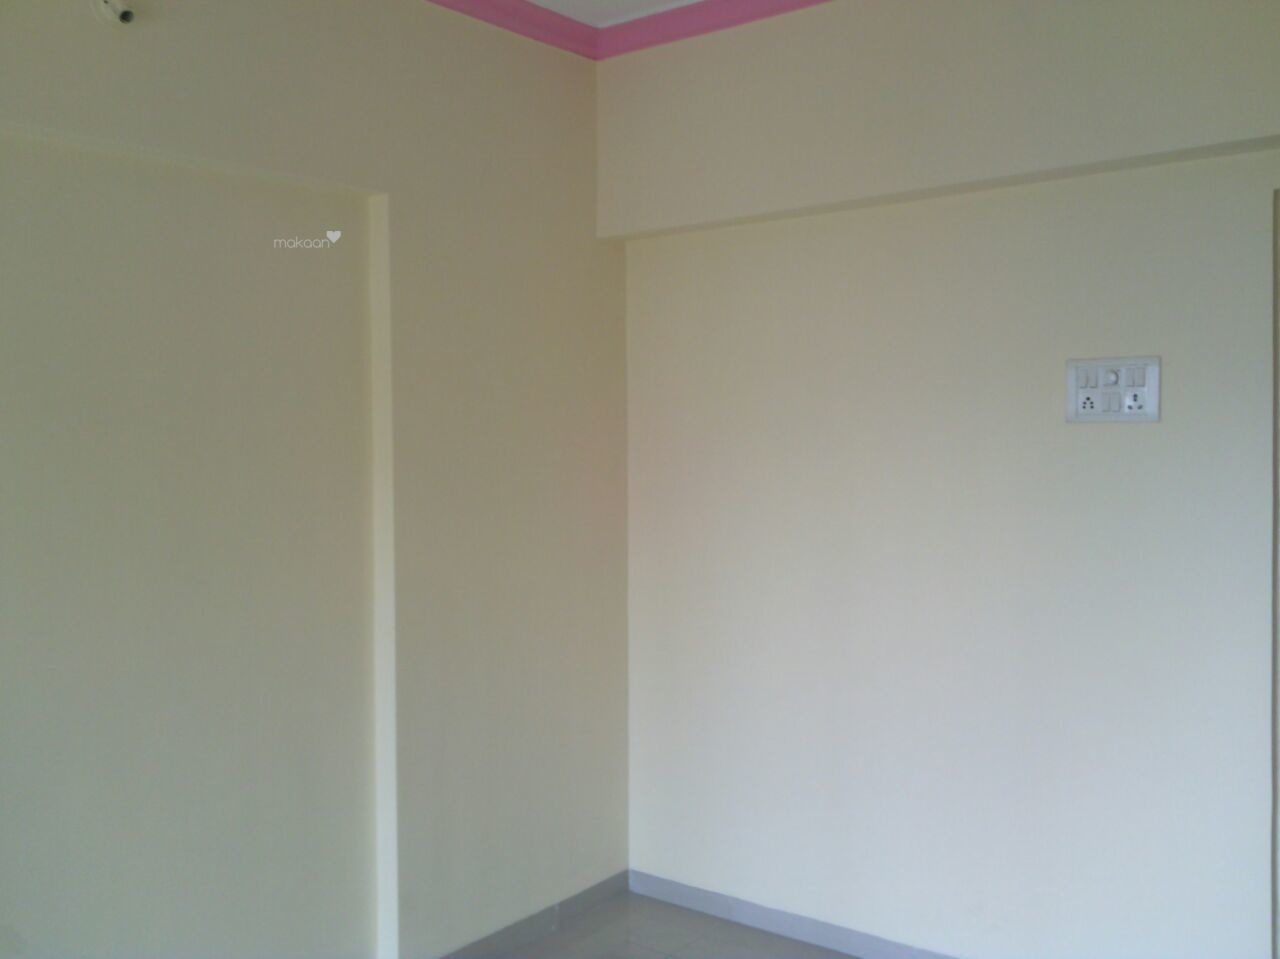 2500 sq ft 3BHK 3BHK+3T (2,500 sq ft) Property By Bhoomi Enterprises In Project, Kharghar